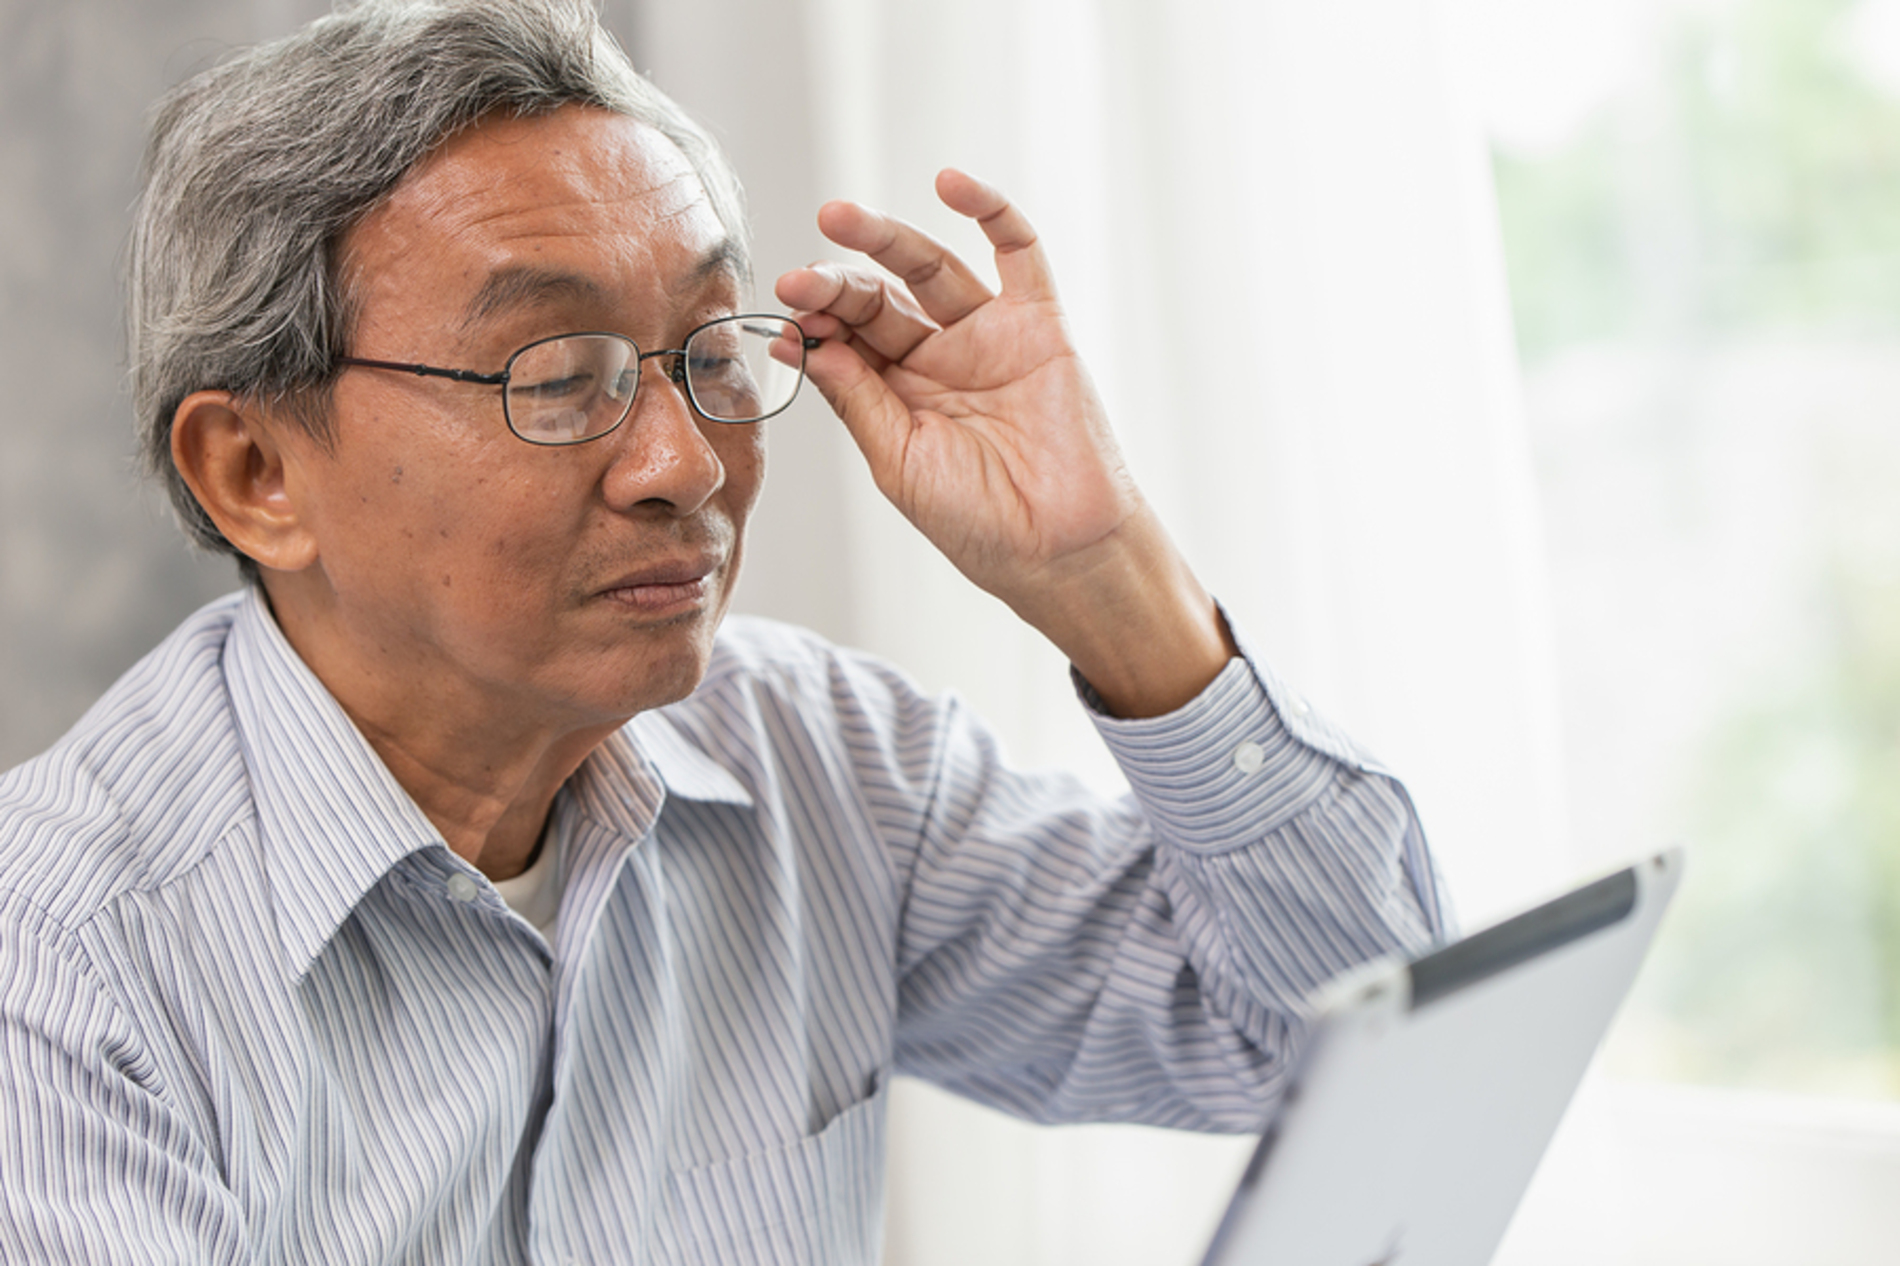 Man holding his glasses in one hand while reading his tablet.